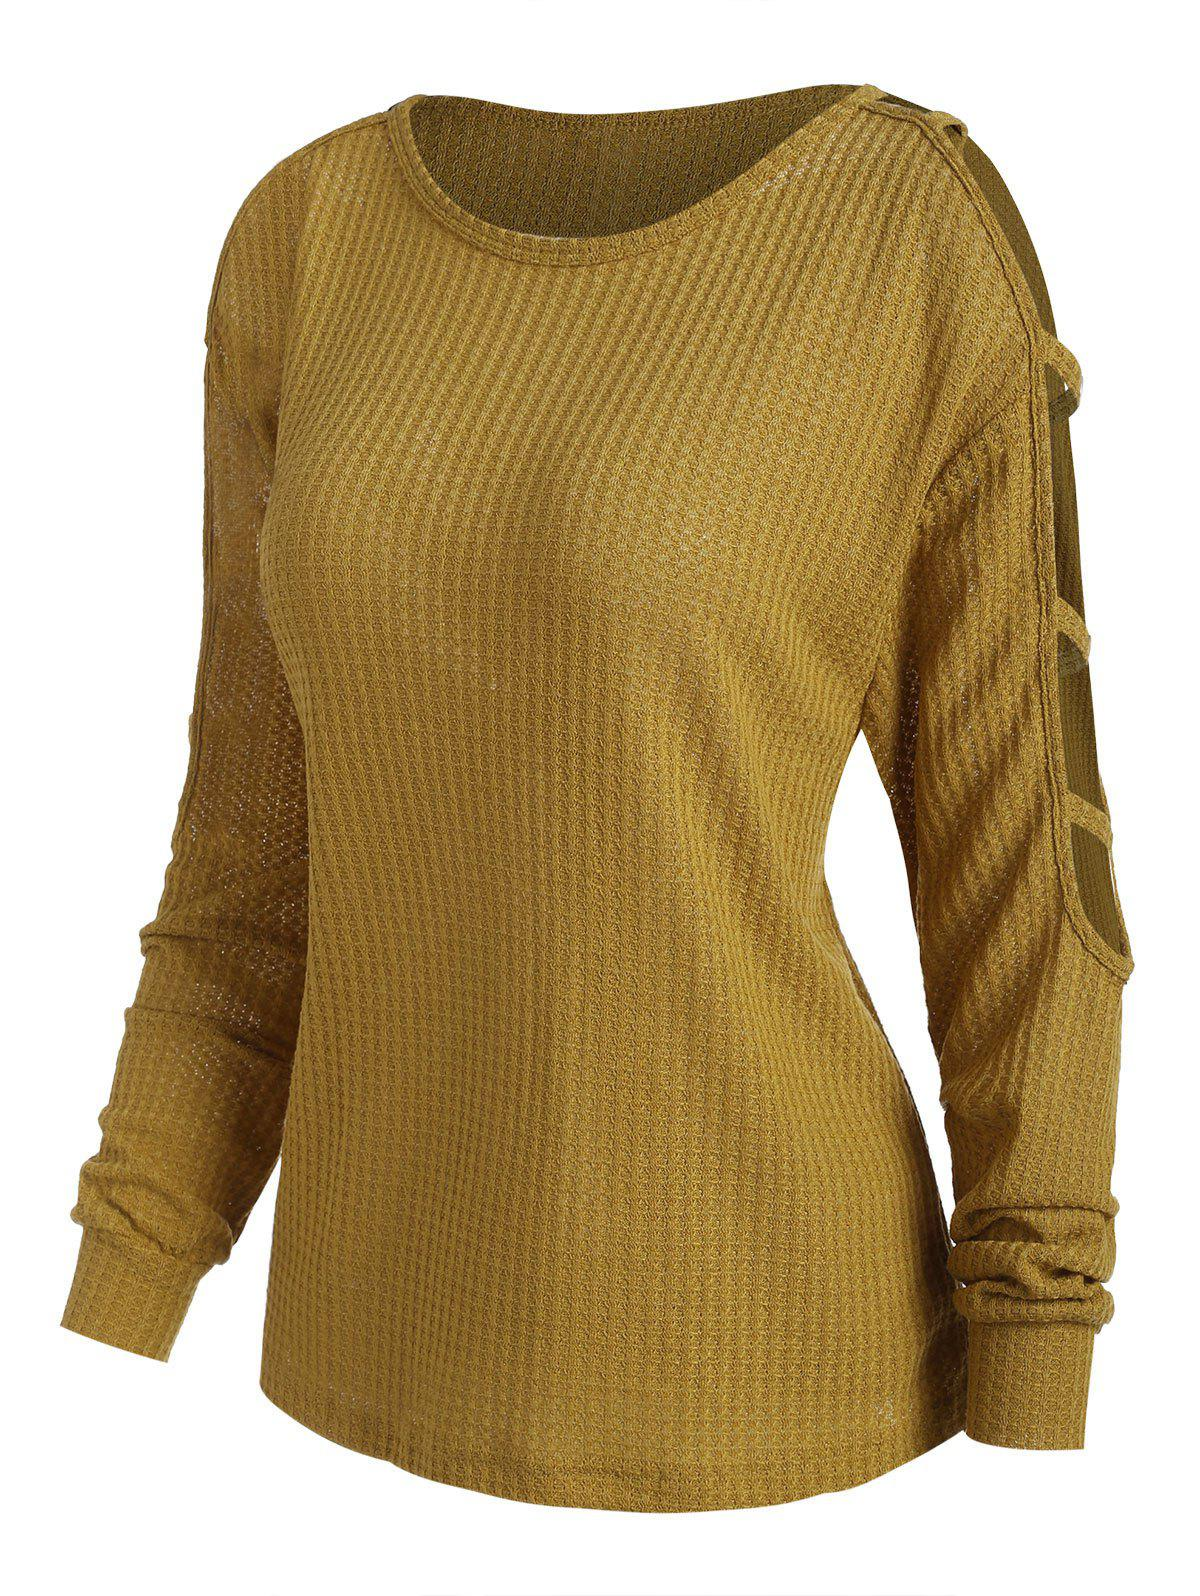 Chic Ladder Cutout Textured Solid Knitwear